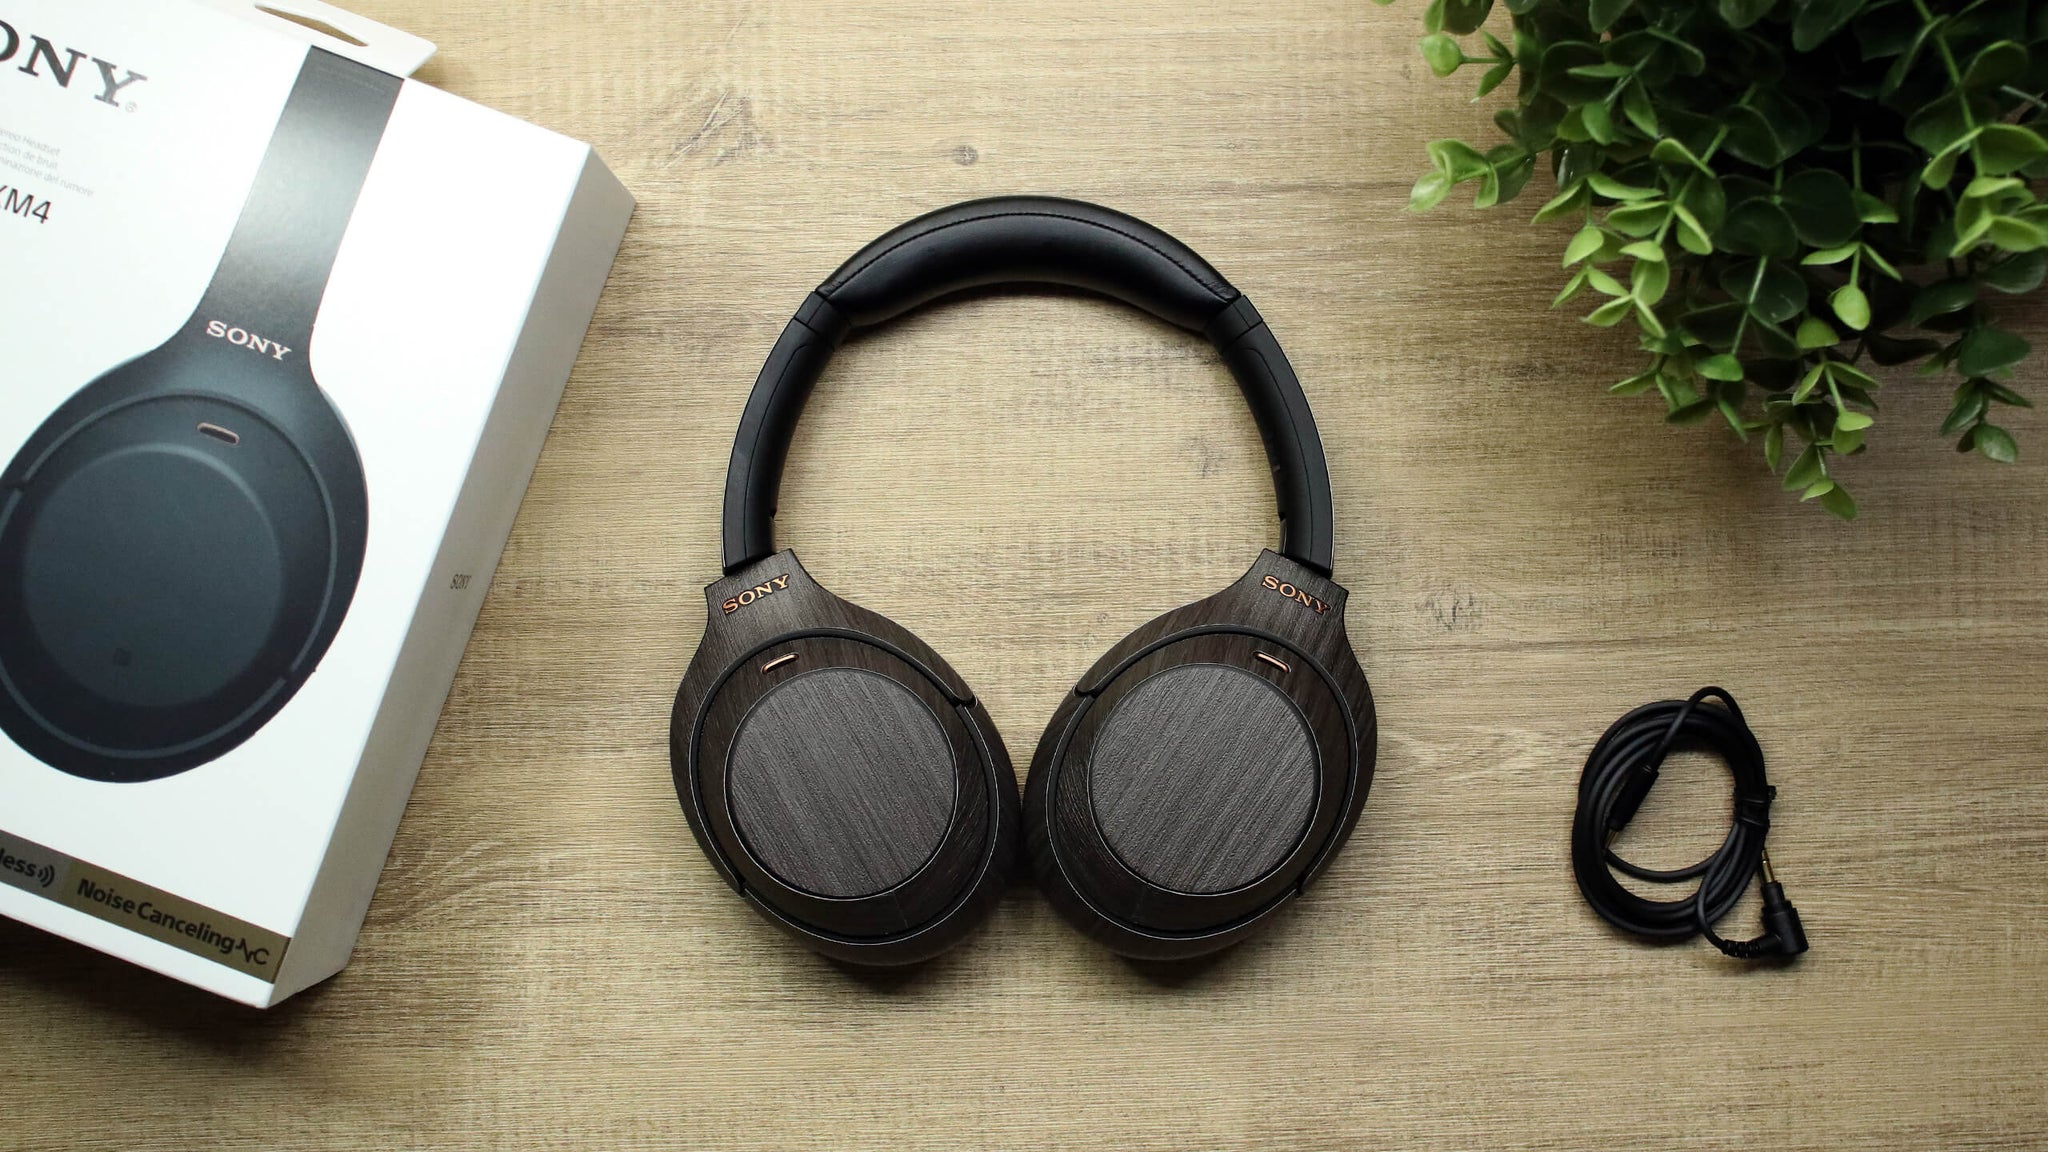 Sony WH1000XM4 Wireless Headphone Silverblack Wood Skins